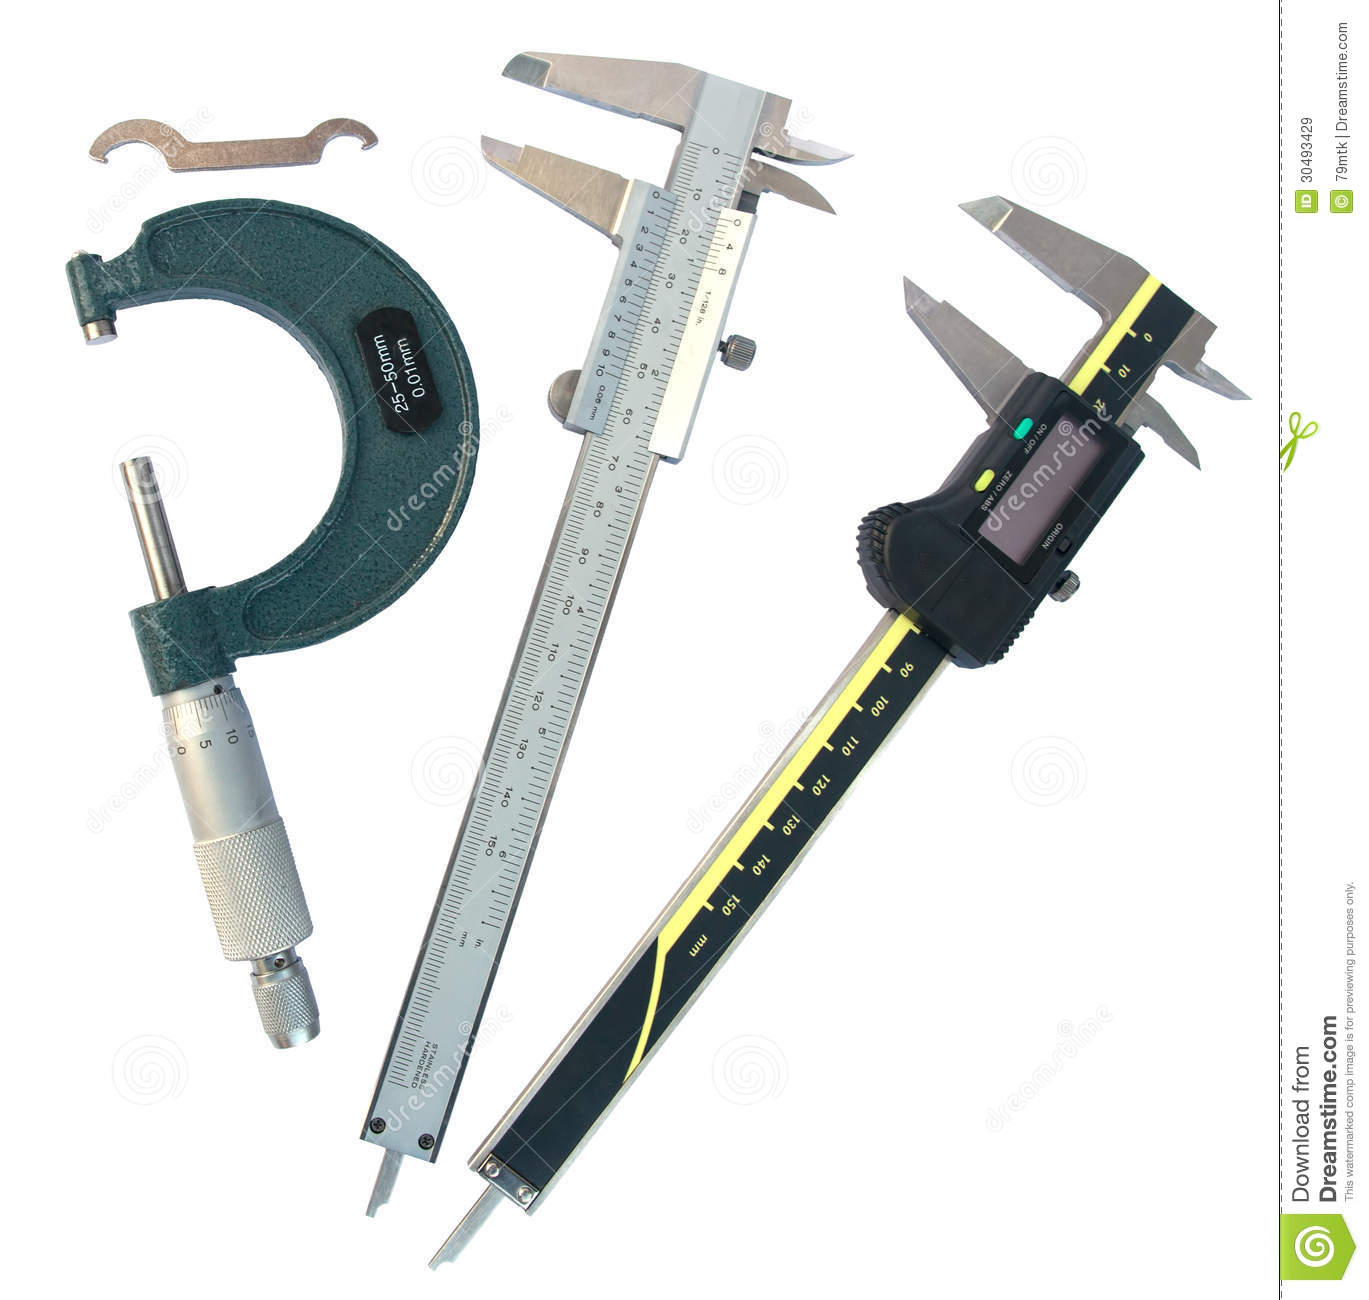 Micrometer And Vernier Caliper With Clipping Paths Royalty Free Stock Images